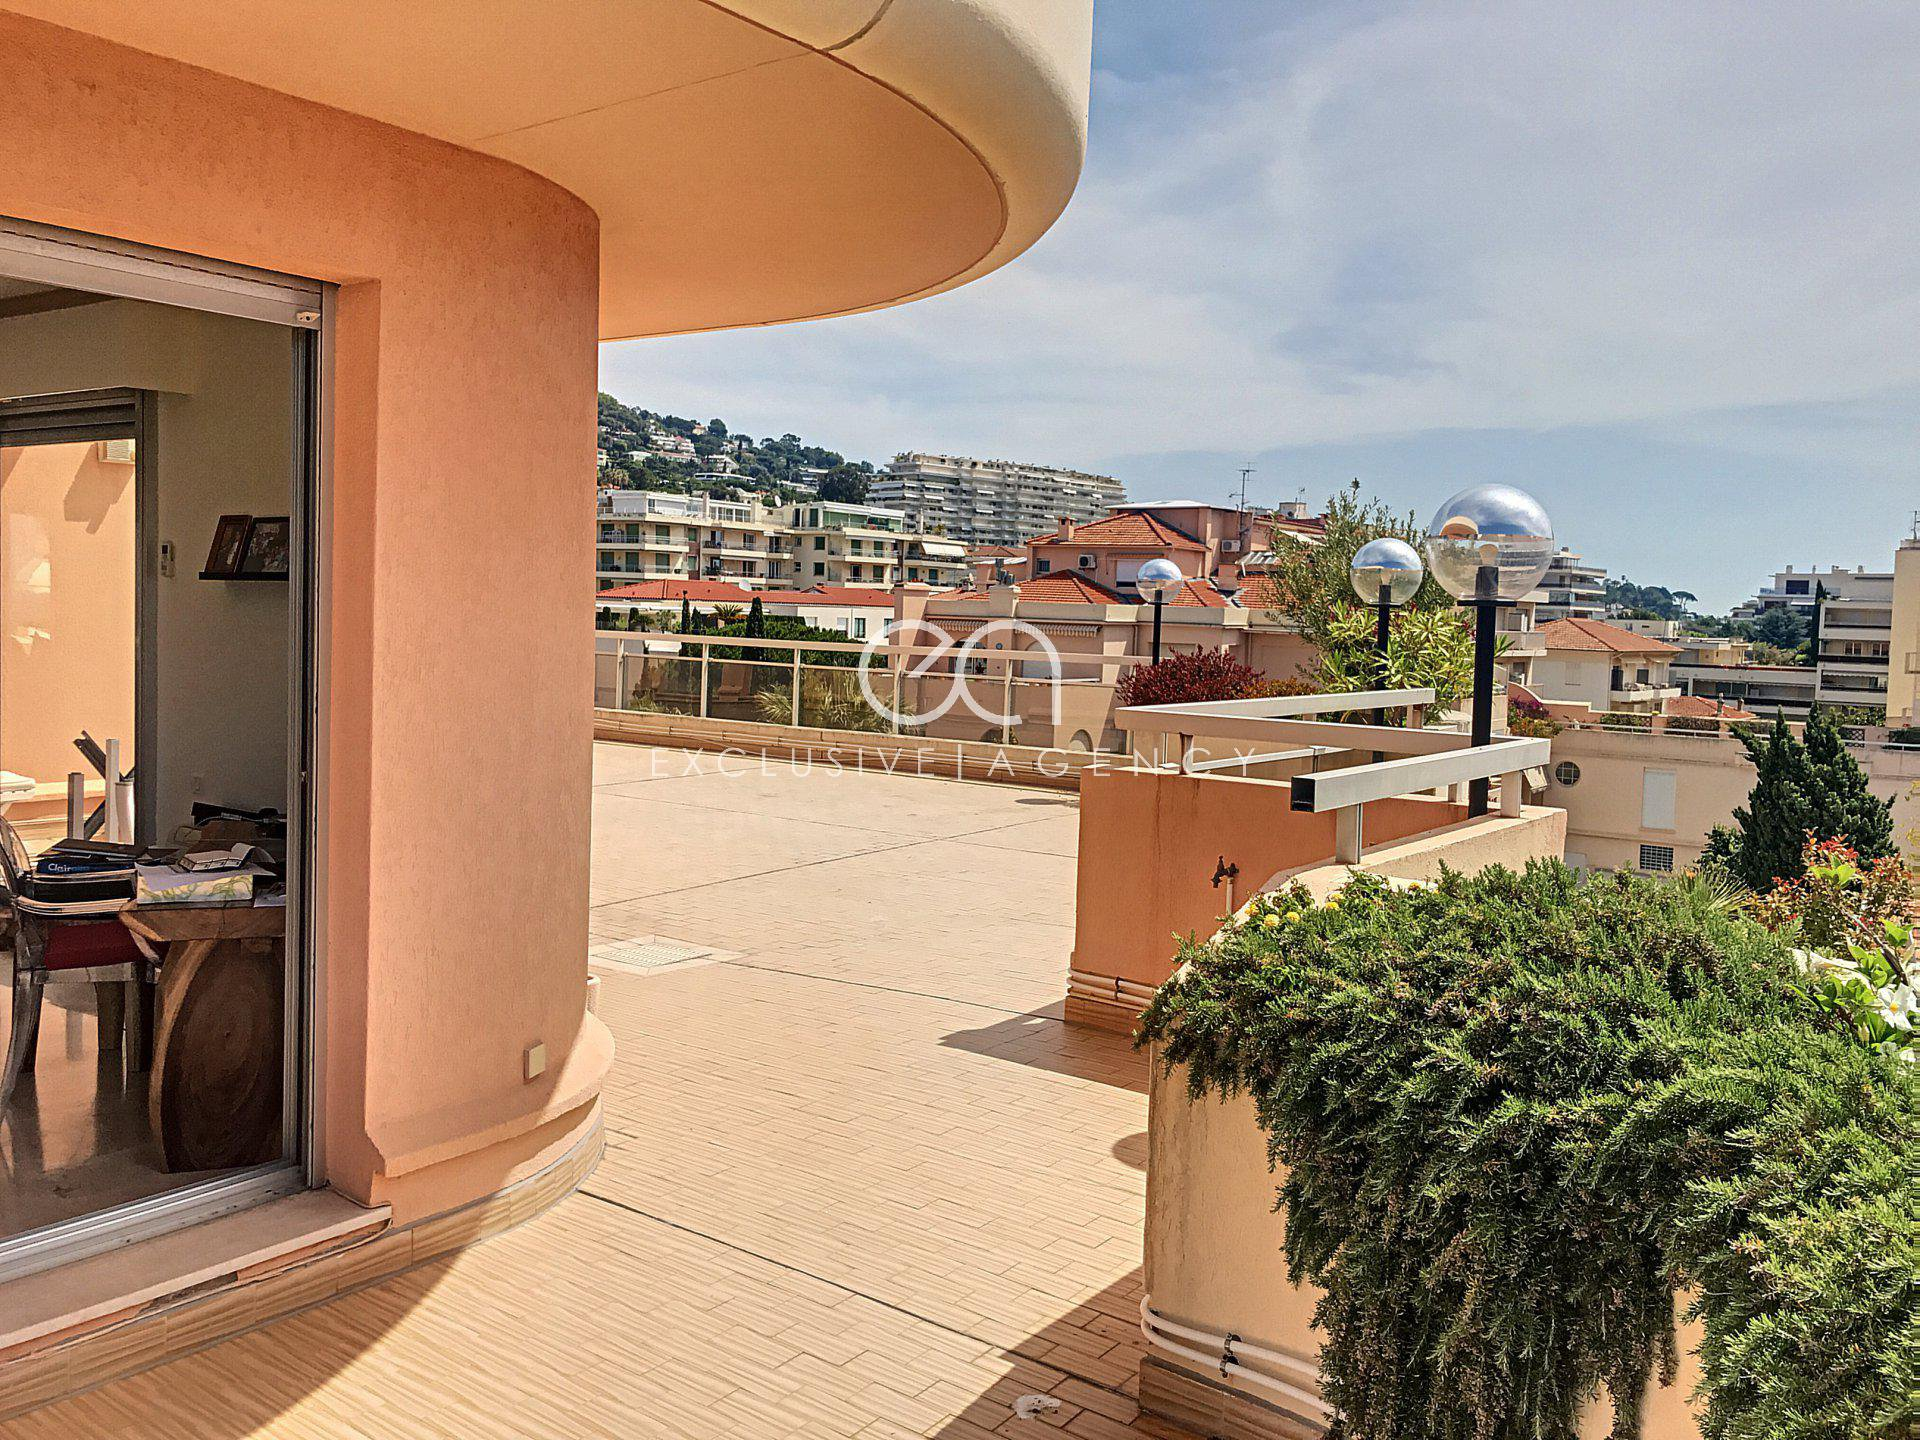 Appartement-terrasse à vendre Cannes - Basse Californie - terrasse 254 m2